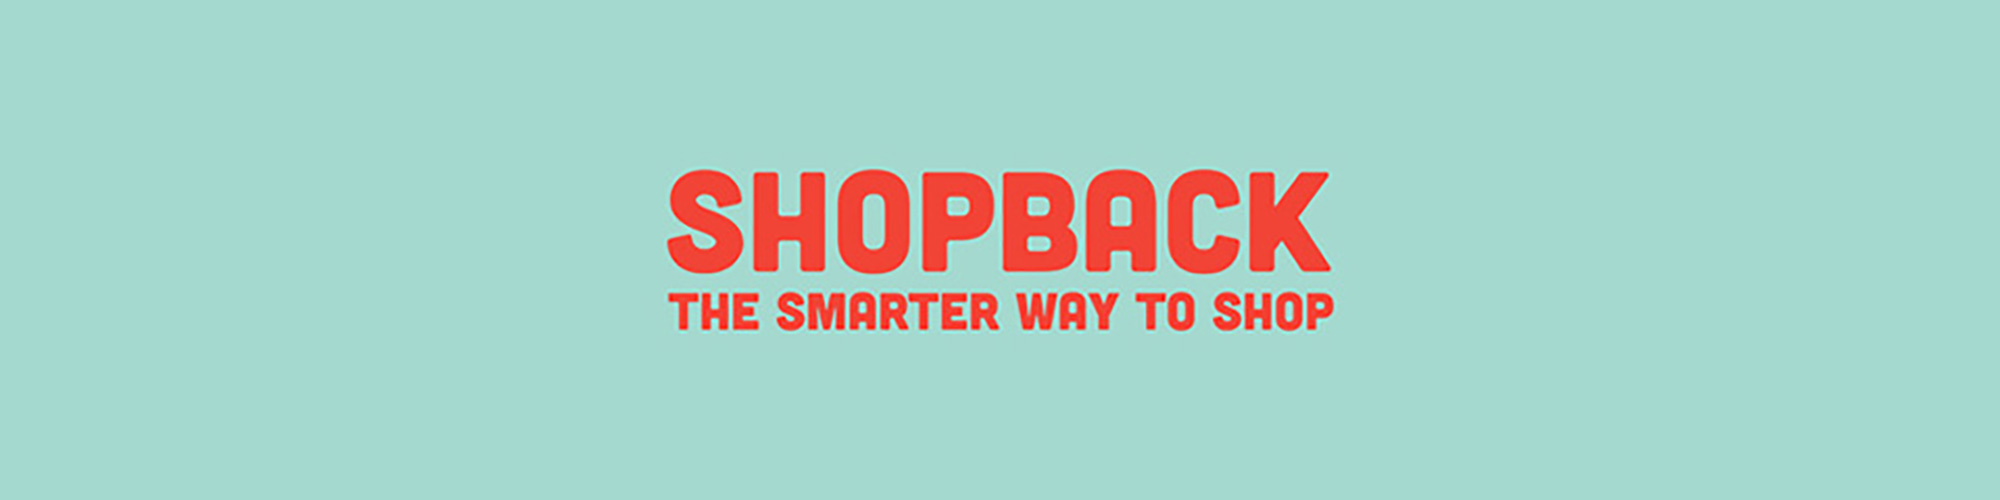 SHOPBACK the smarter way to shop